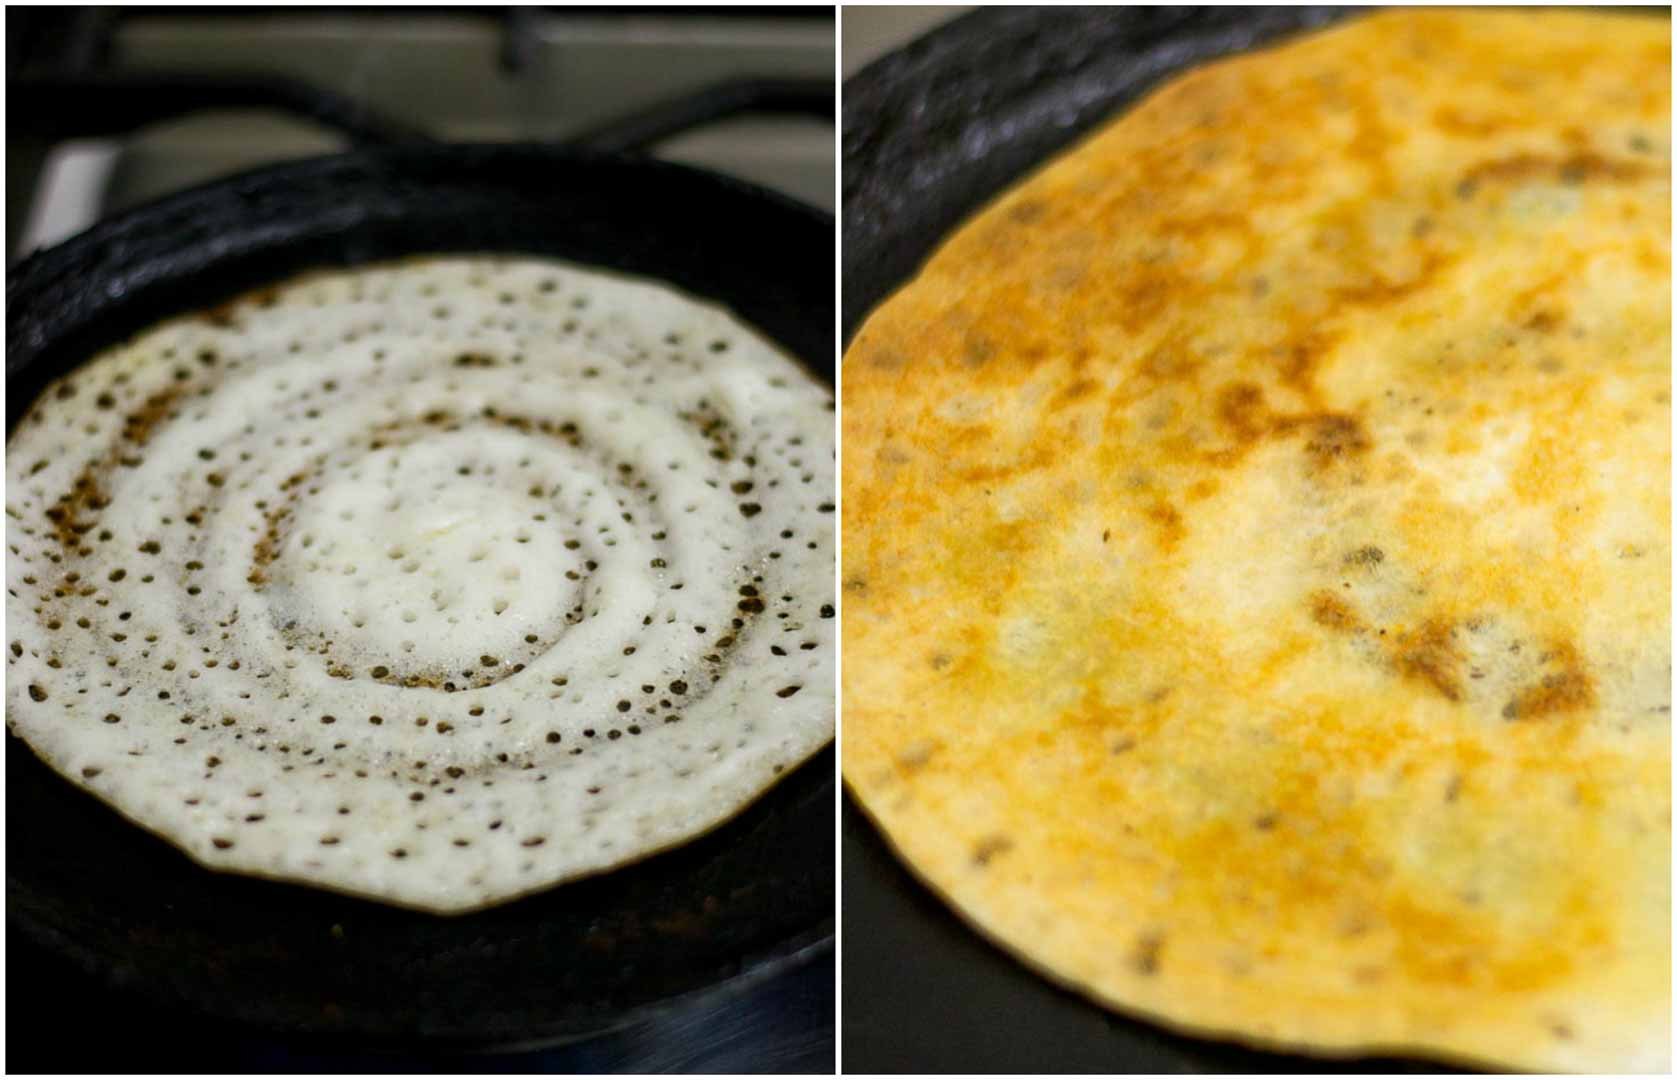 davanagere-benne-dosa-recipe-13